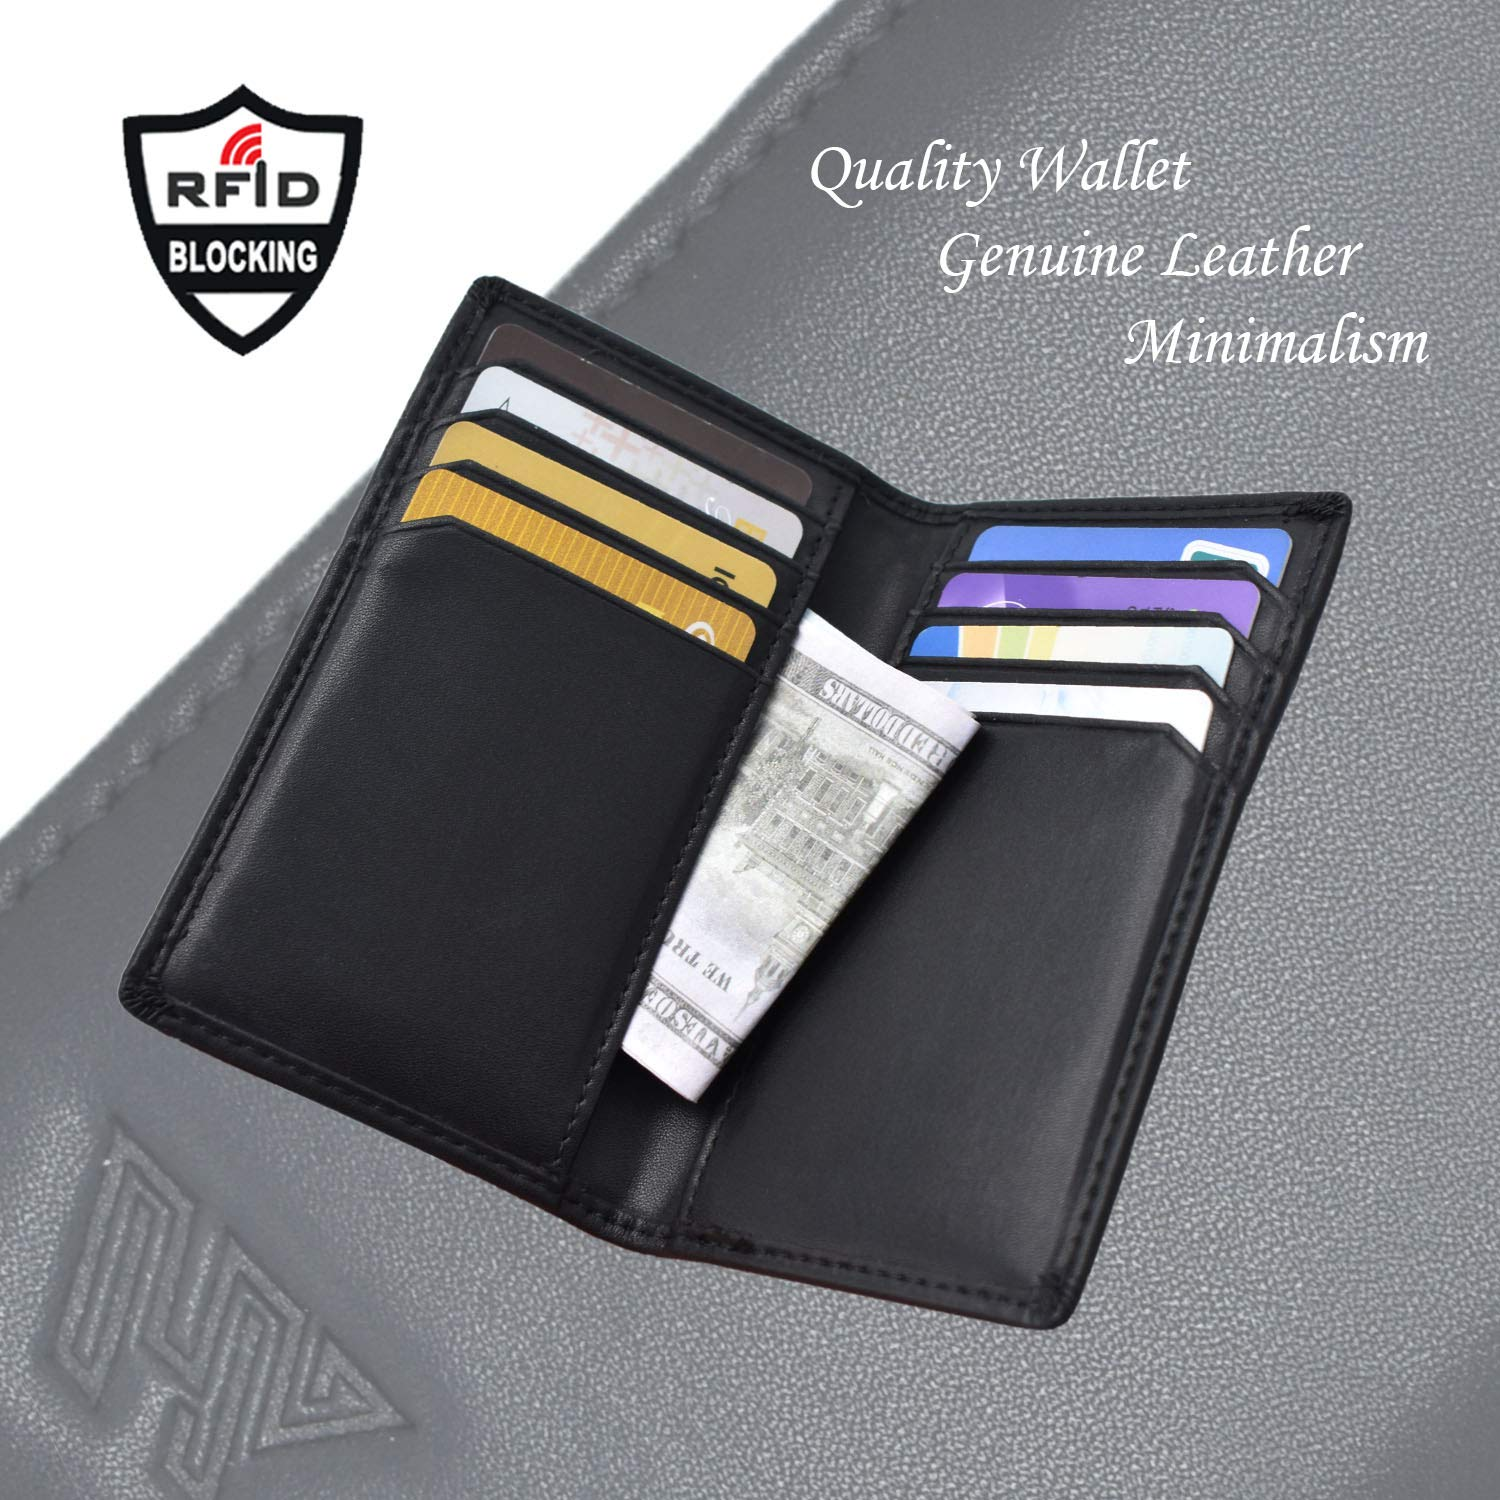 YH-DIMENSION, High-End Wallet, RFID Blocking Credit Card Holder Wallet Bifold for Men Women,Ture Quality, Genuine Leather, Minimalist Design, Large Capacity, Light Weight, Black